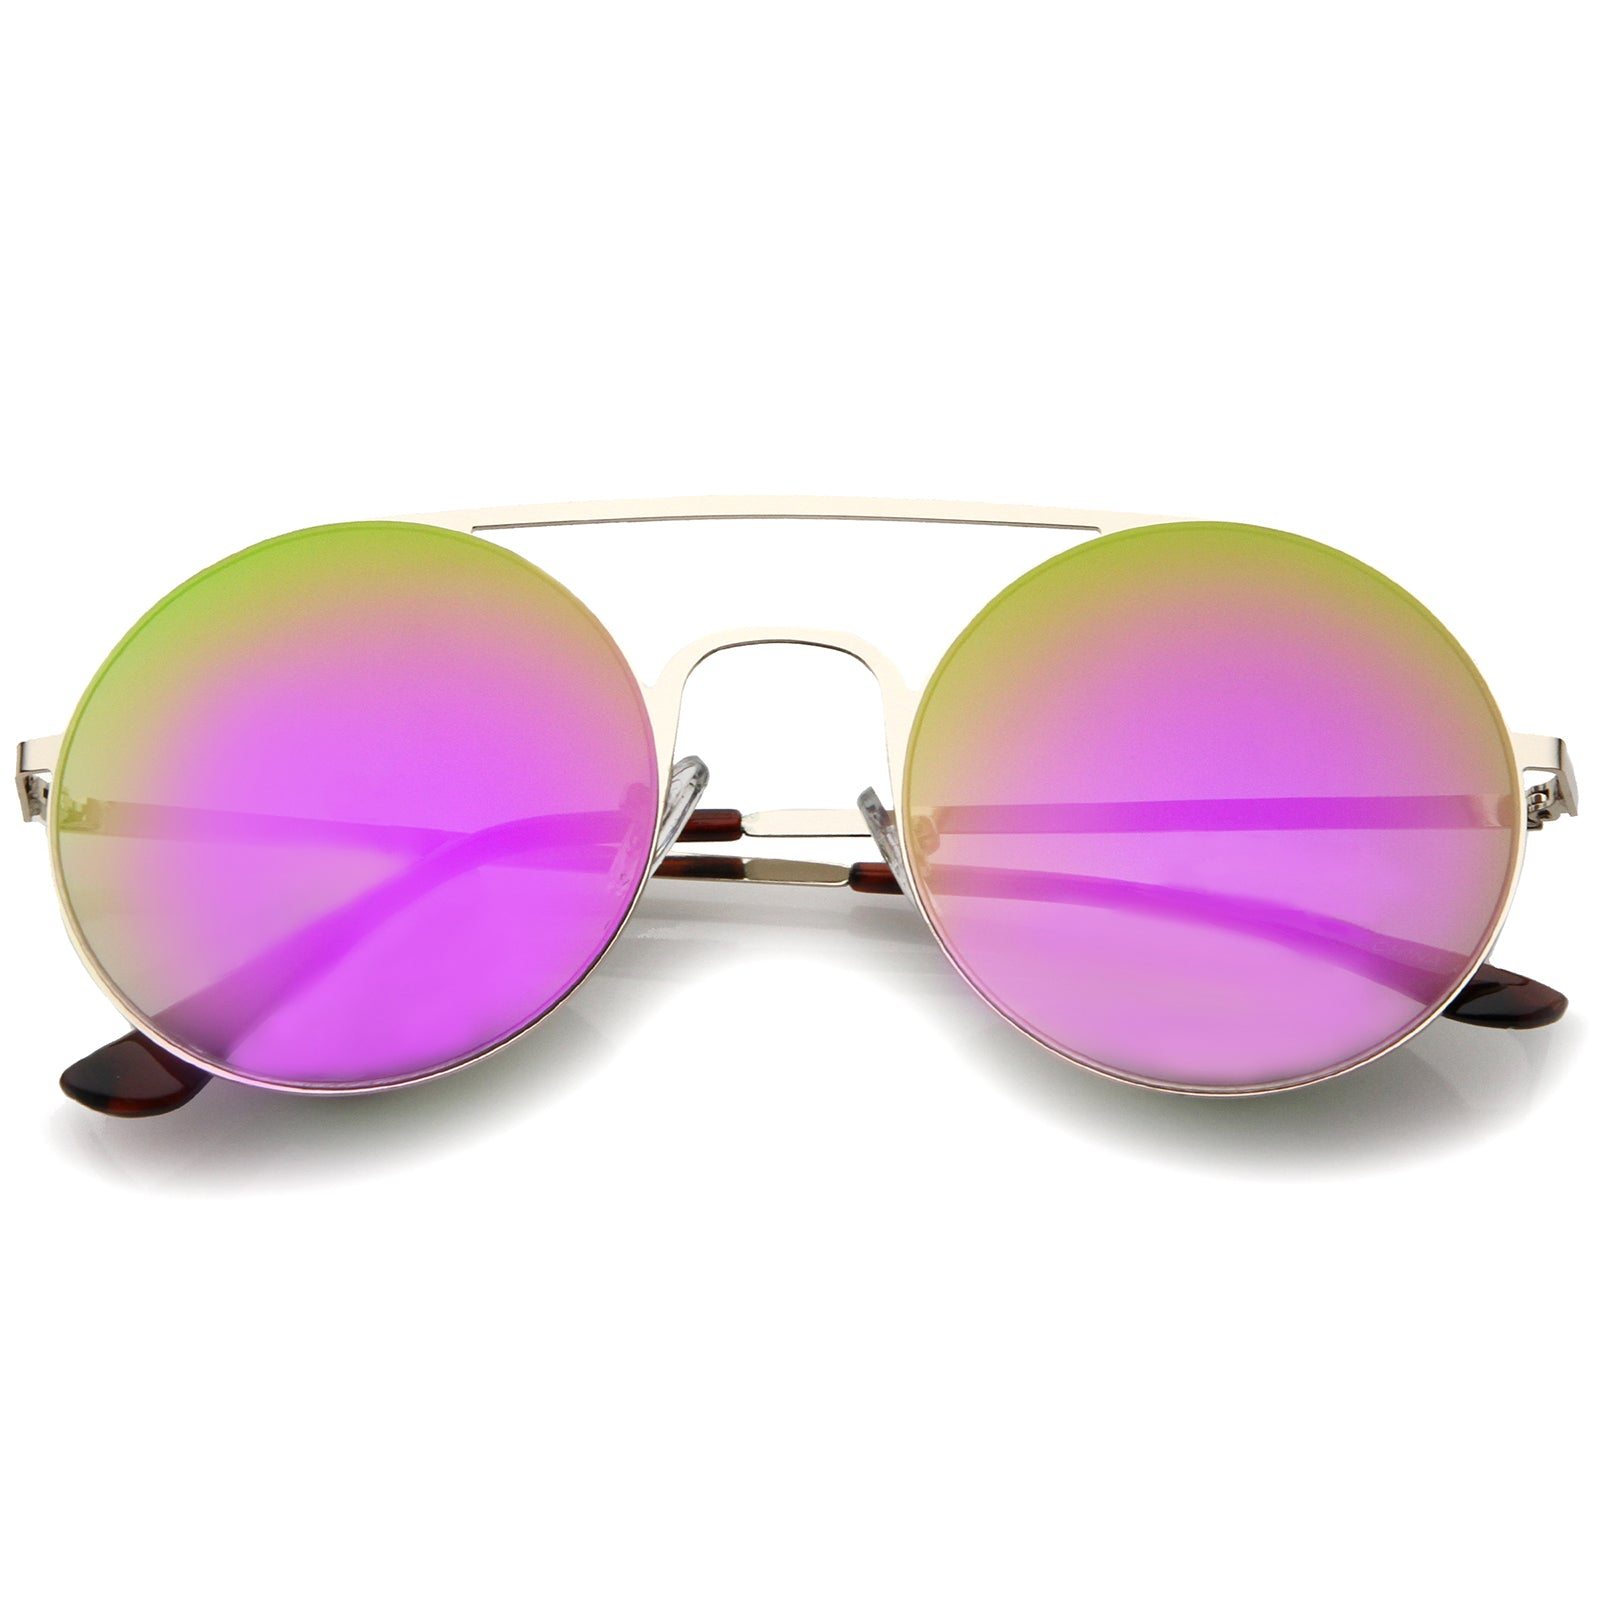 Modern Slim Double Nose Bridge Colored Mirror Flat Lens Round Sunglasses 53mm - sunglass.la - 7